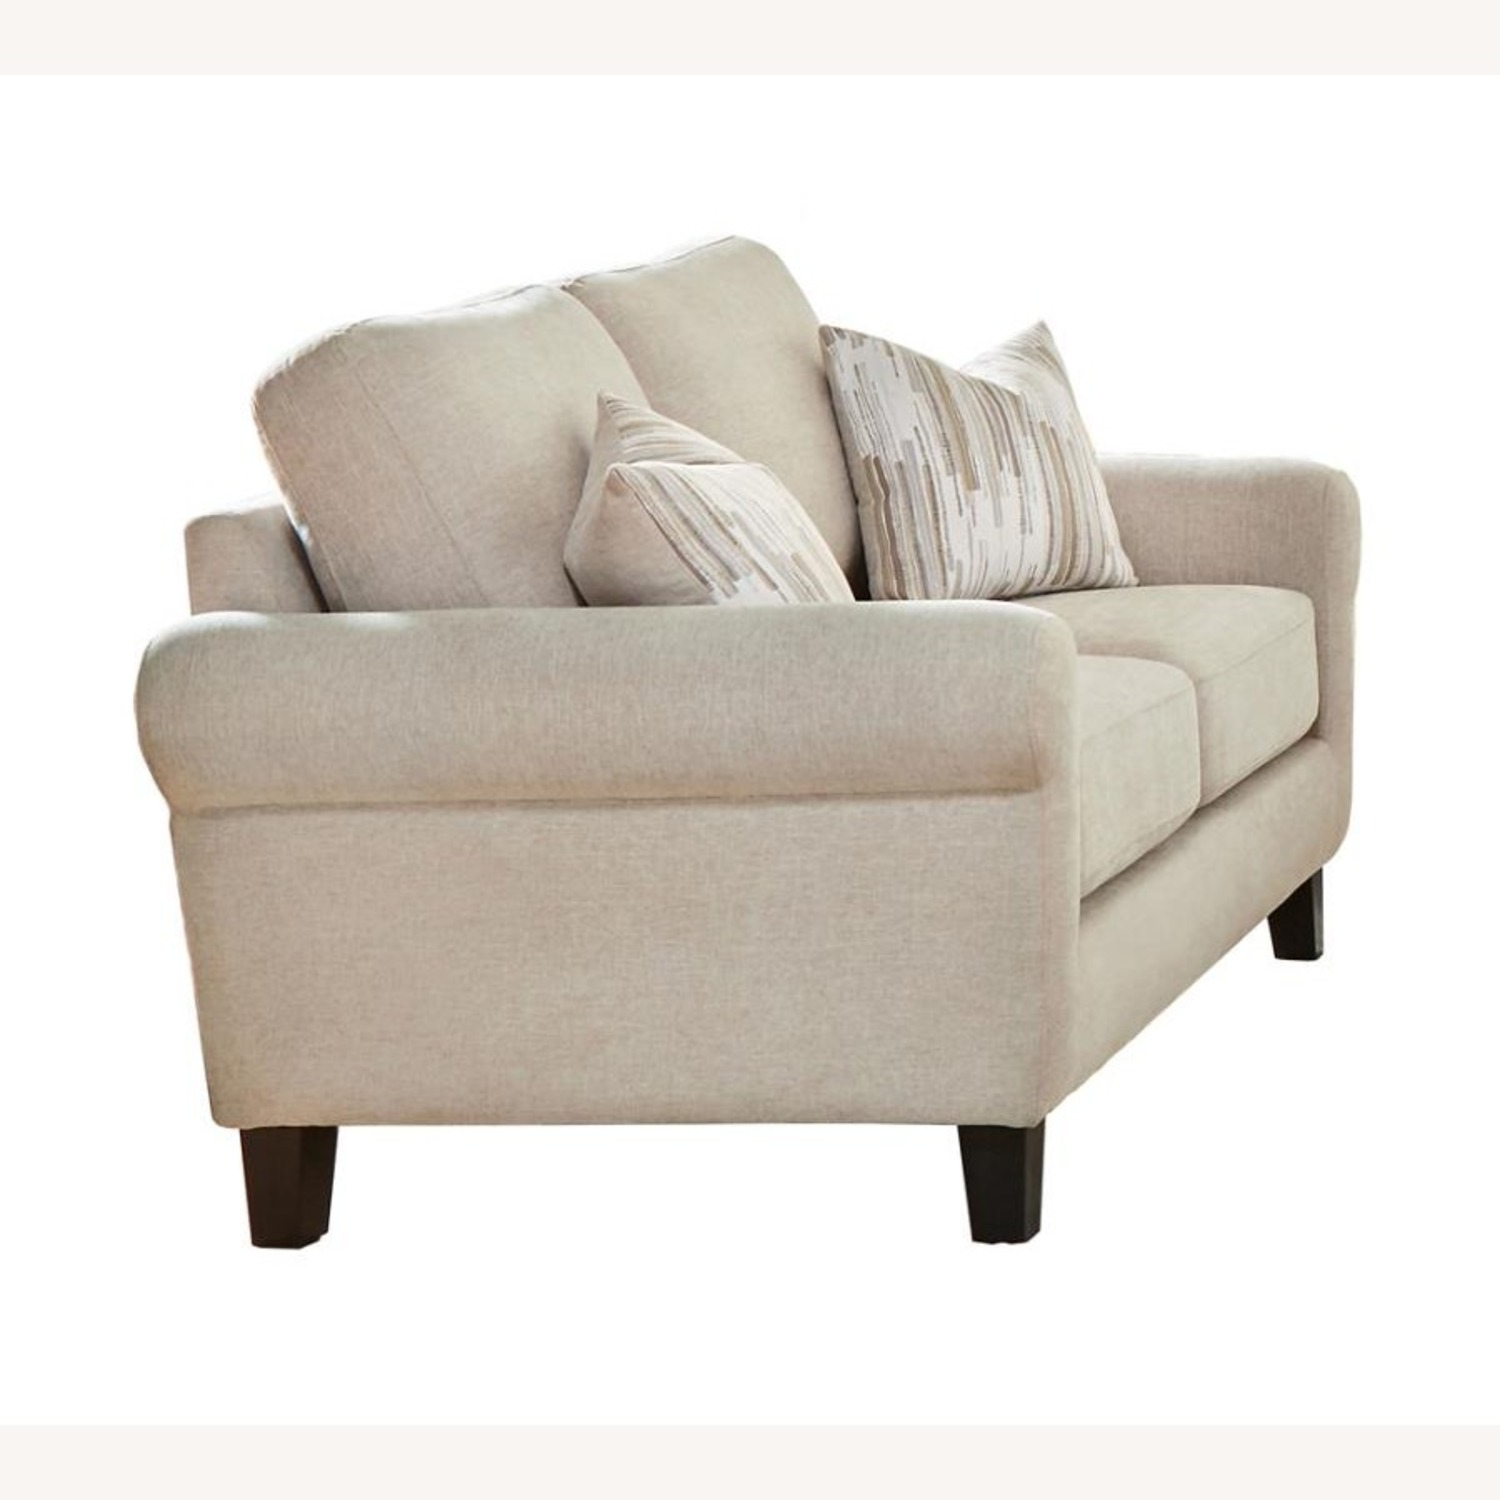 Loveseat In Oatmeal Chenille Upholstery - image-0